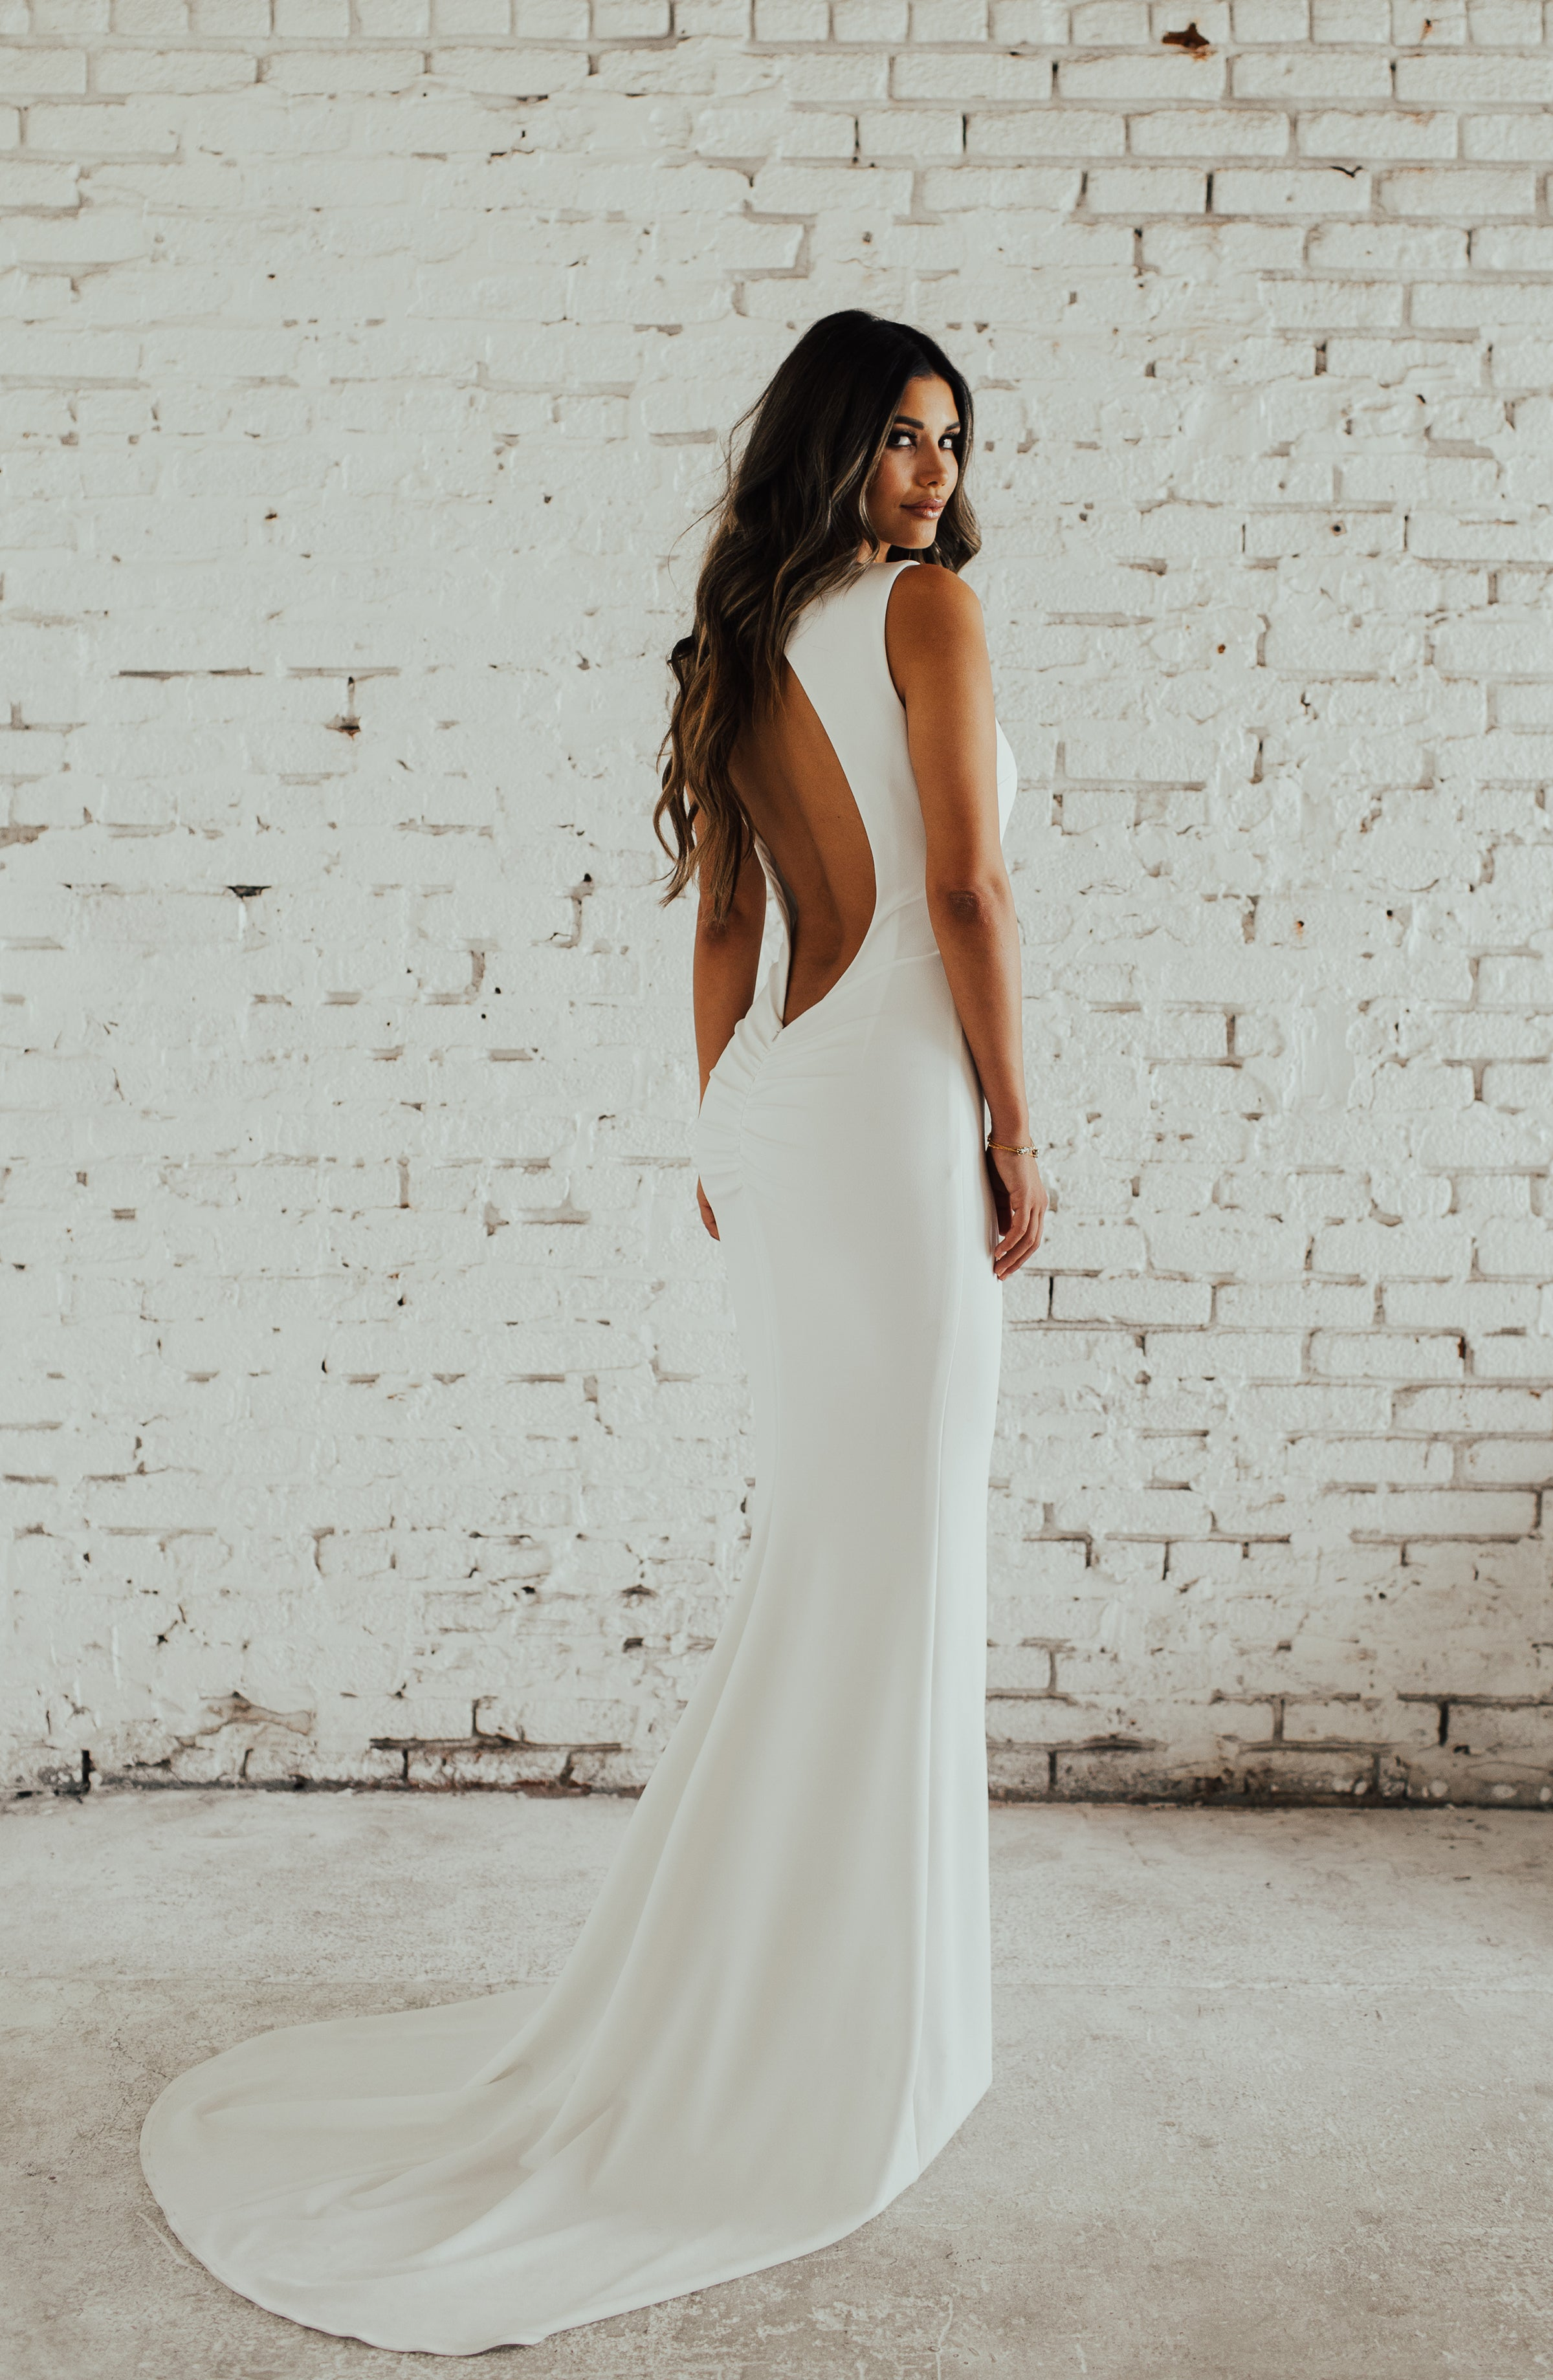 Sample Sale Wedding Dresses Meaning Ficts